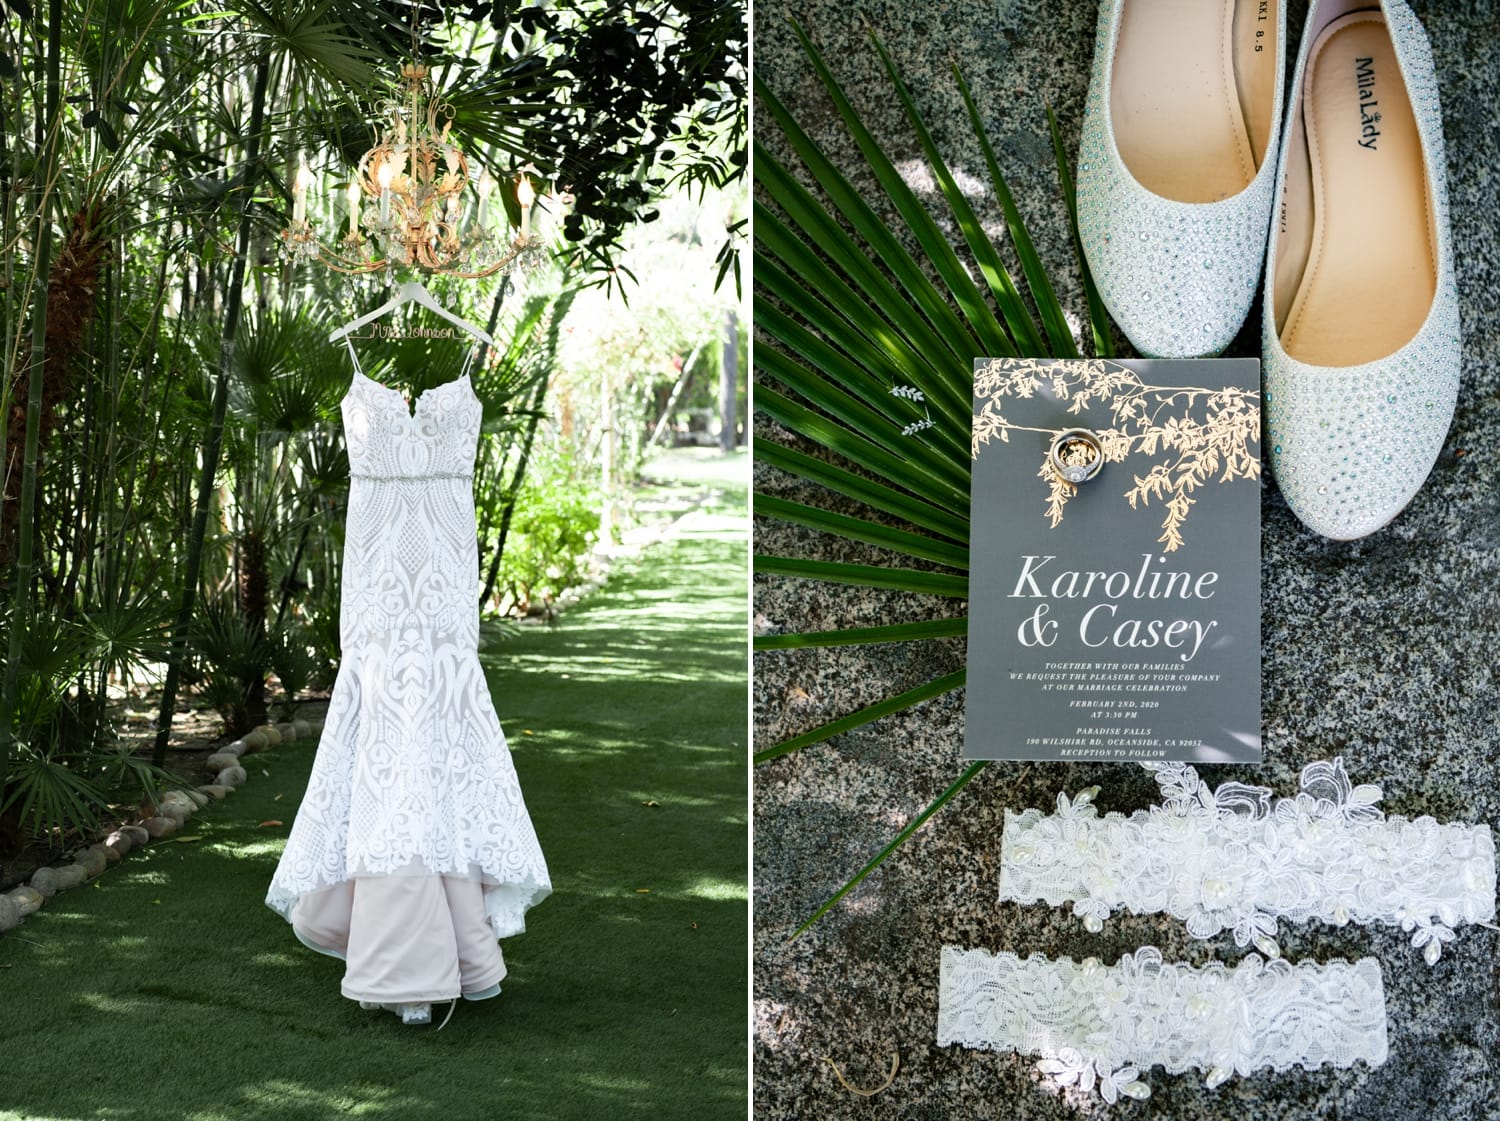 Bride's dress and shoes at Botanica